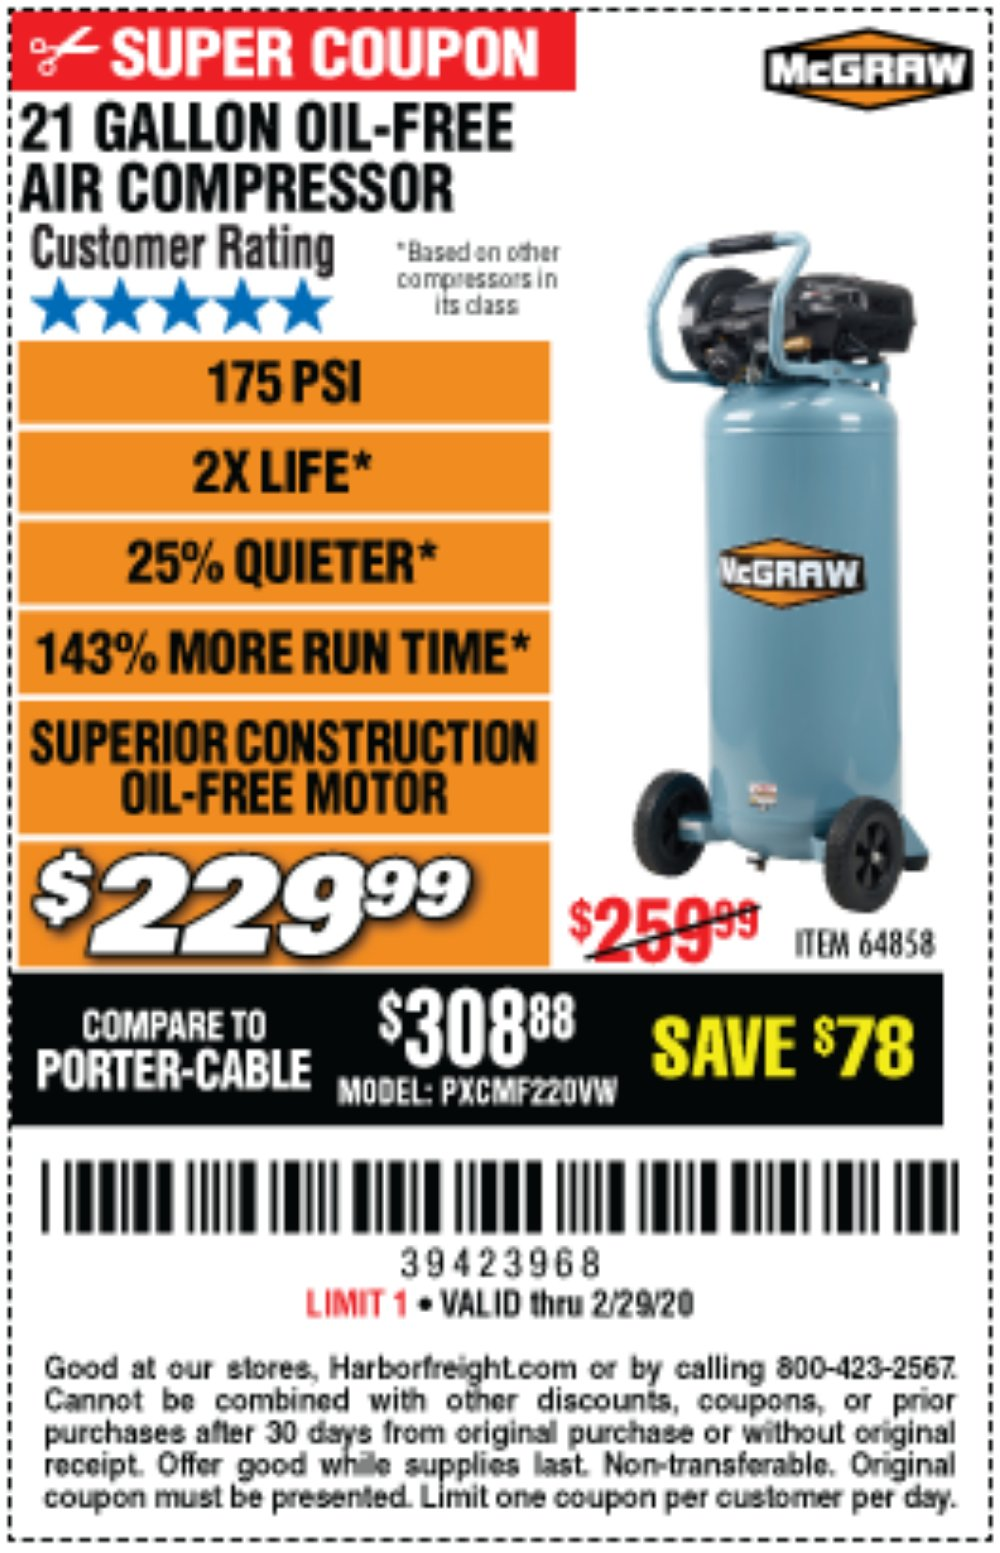 Harbor Freight Coupon, HF Coupons - Mcgraw 175 Psi, 21 Gallon Vertical Oil-free Air Compressor